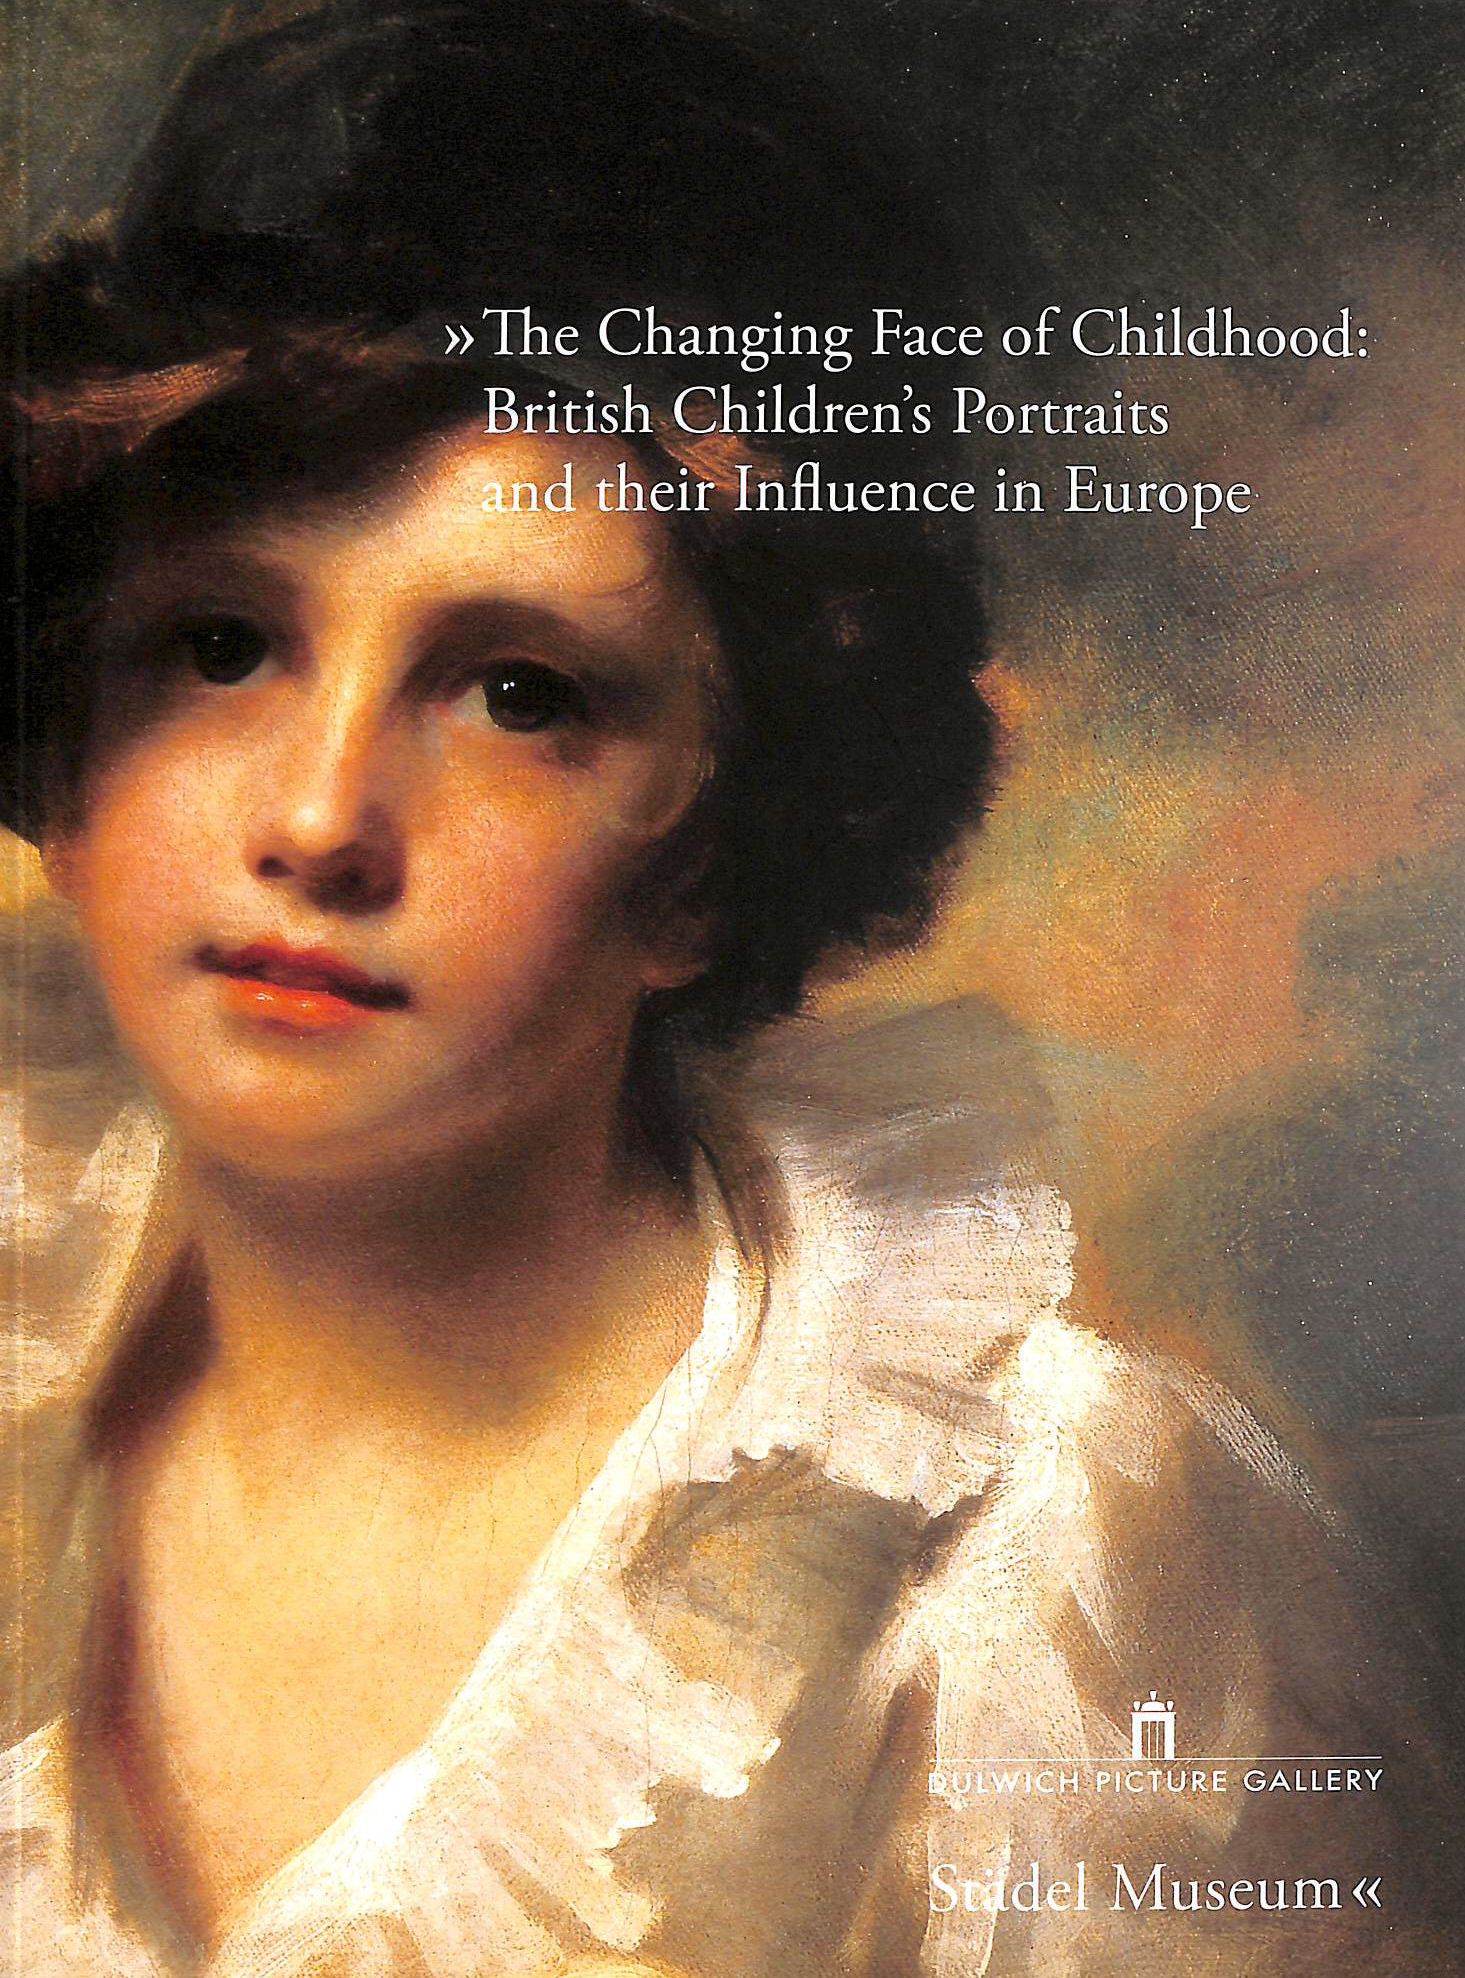 Image for The Changing Face of Childhood: British Children's Portraits and their Influence in Europe